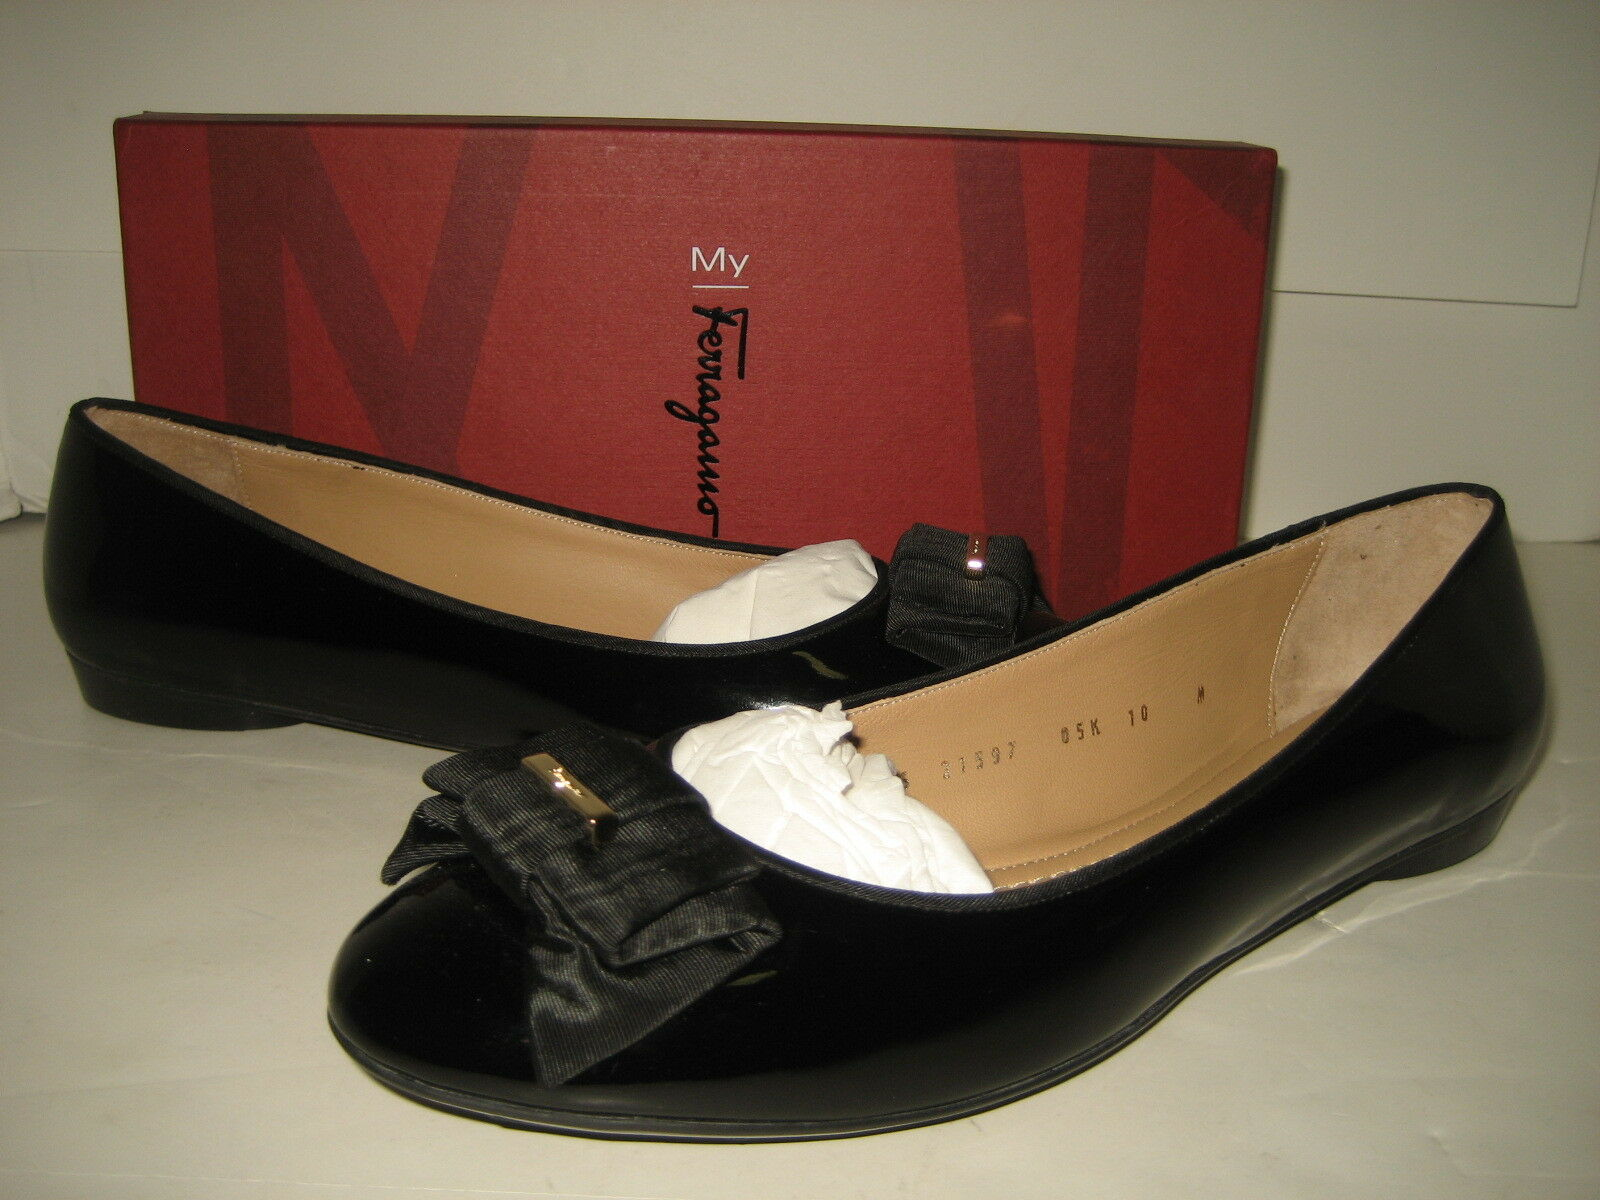 495 NEW Salvatore Ferragamo US 10 My Knot Black Leather Ballet Flats shoes BOX